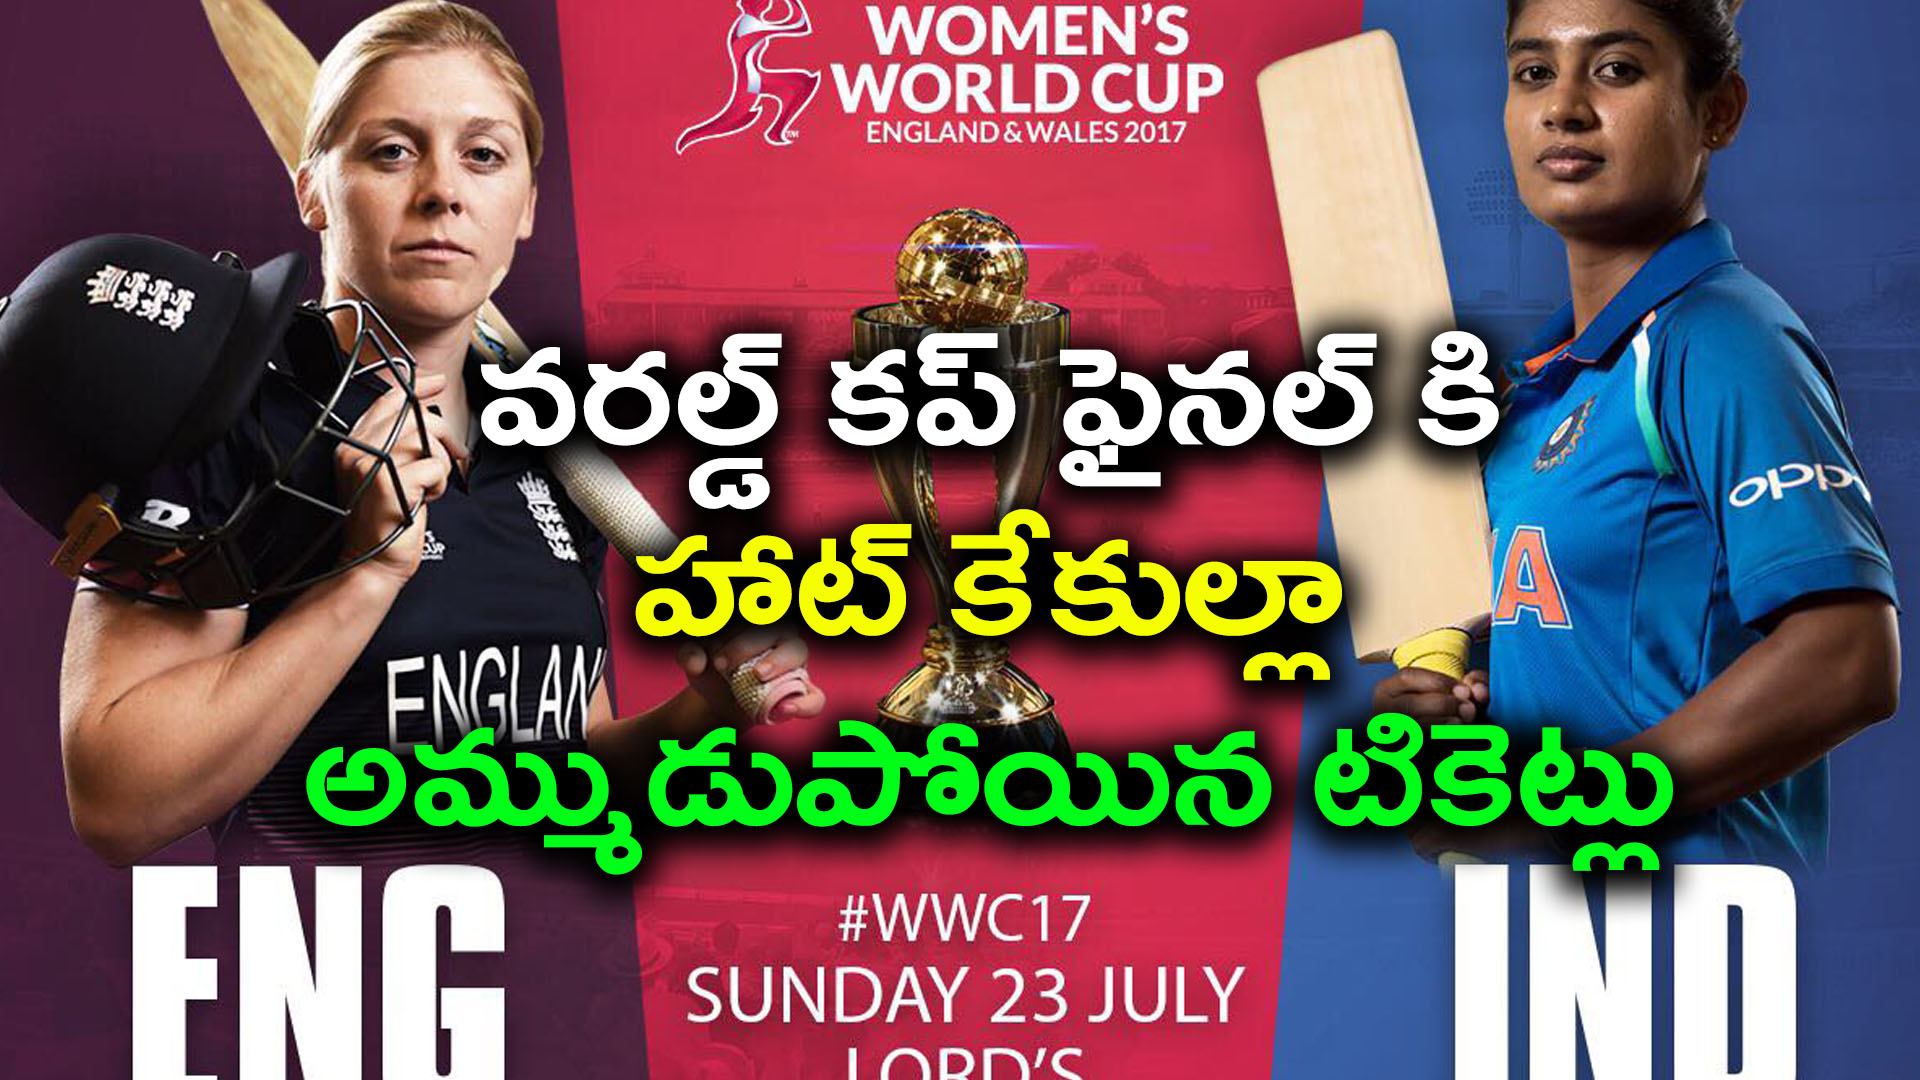 India Vs England: Tickets sold out for Women's World Cup final